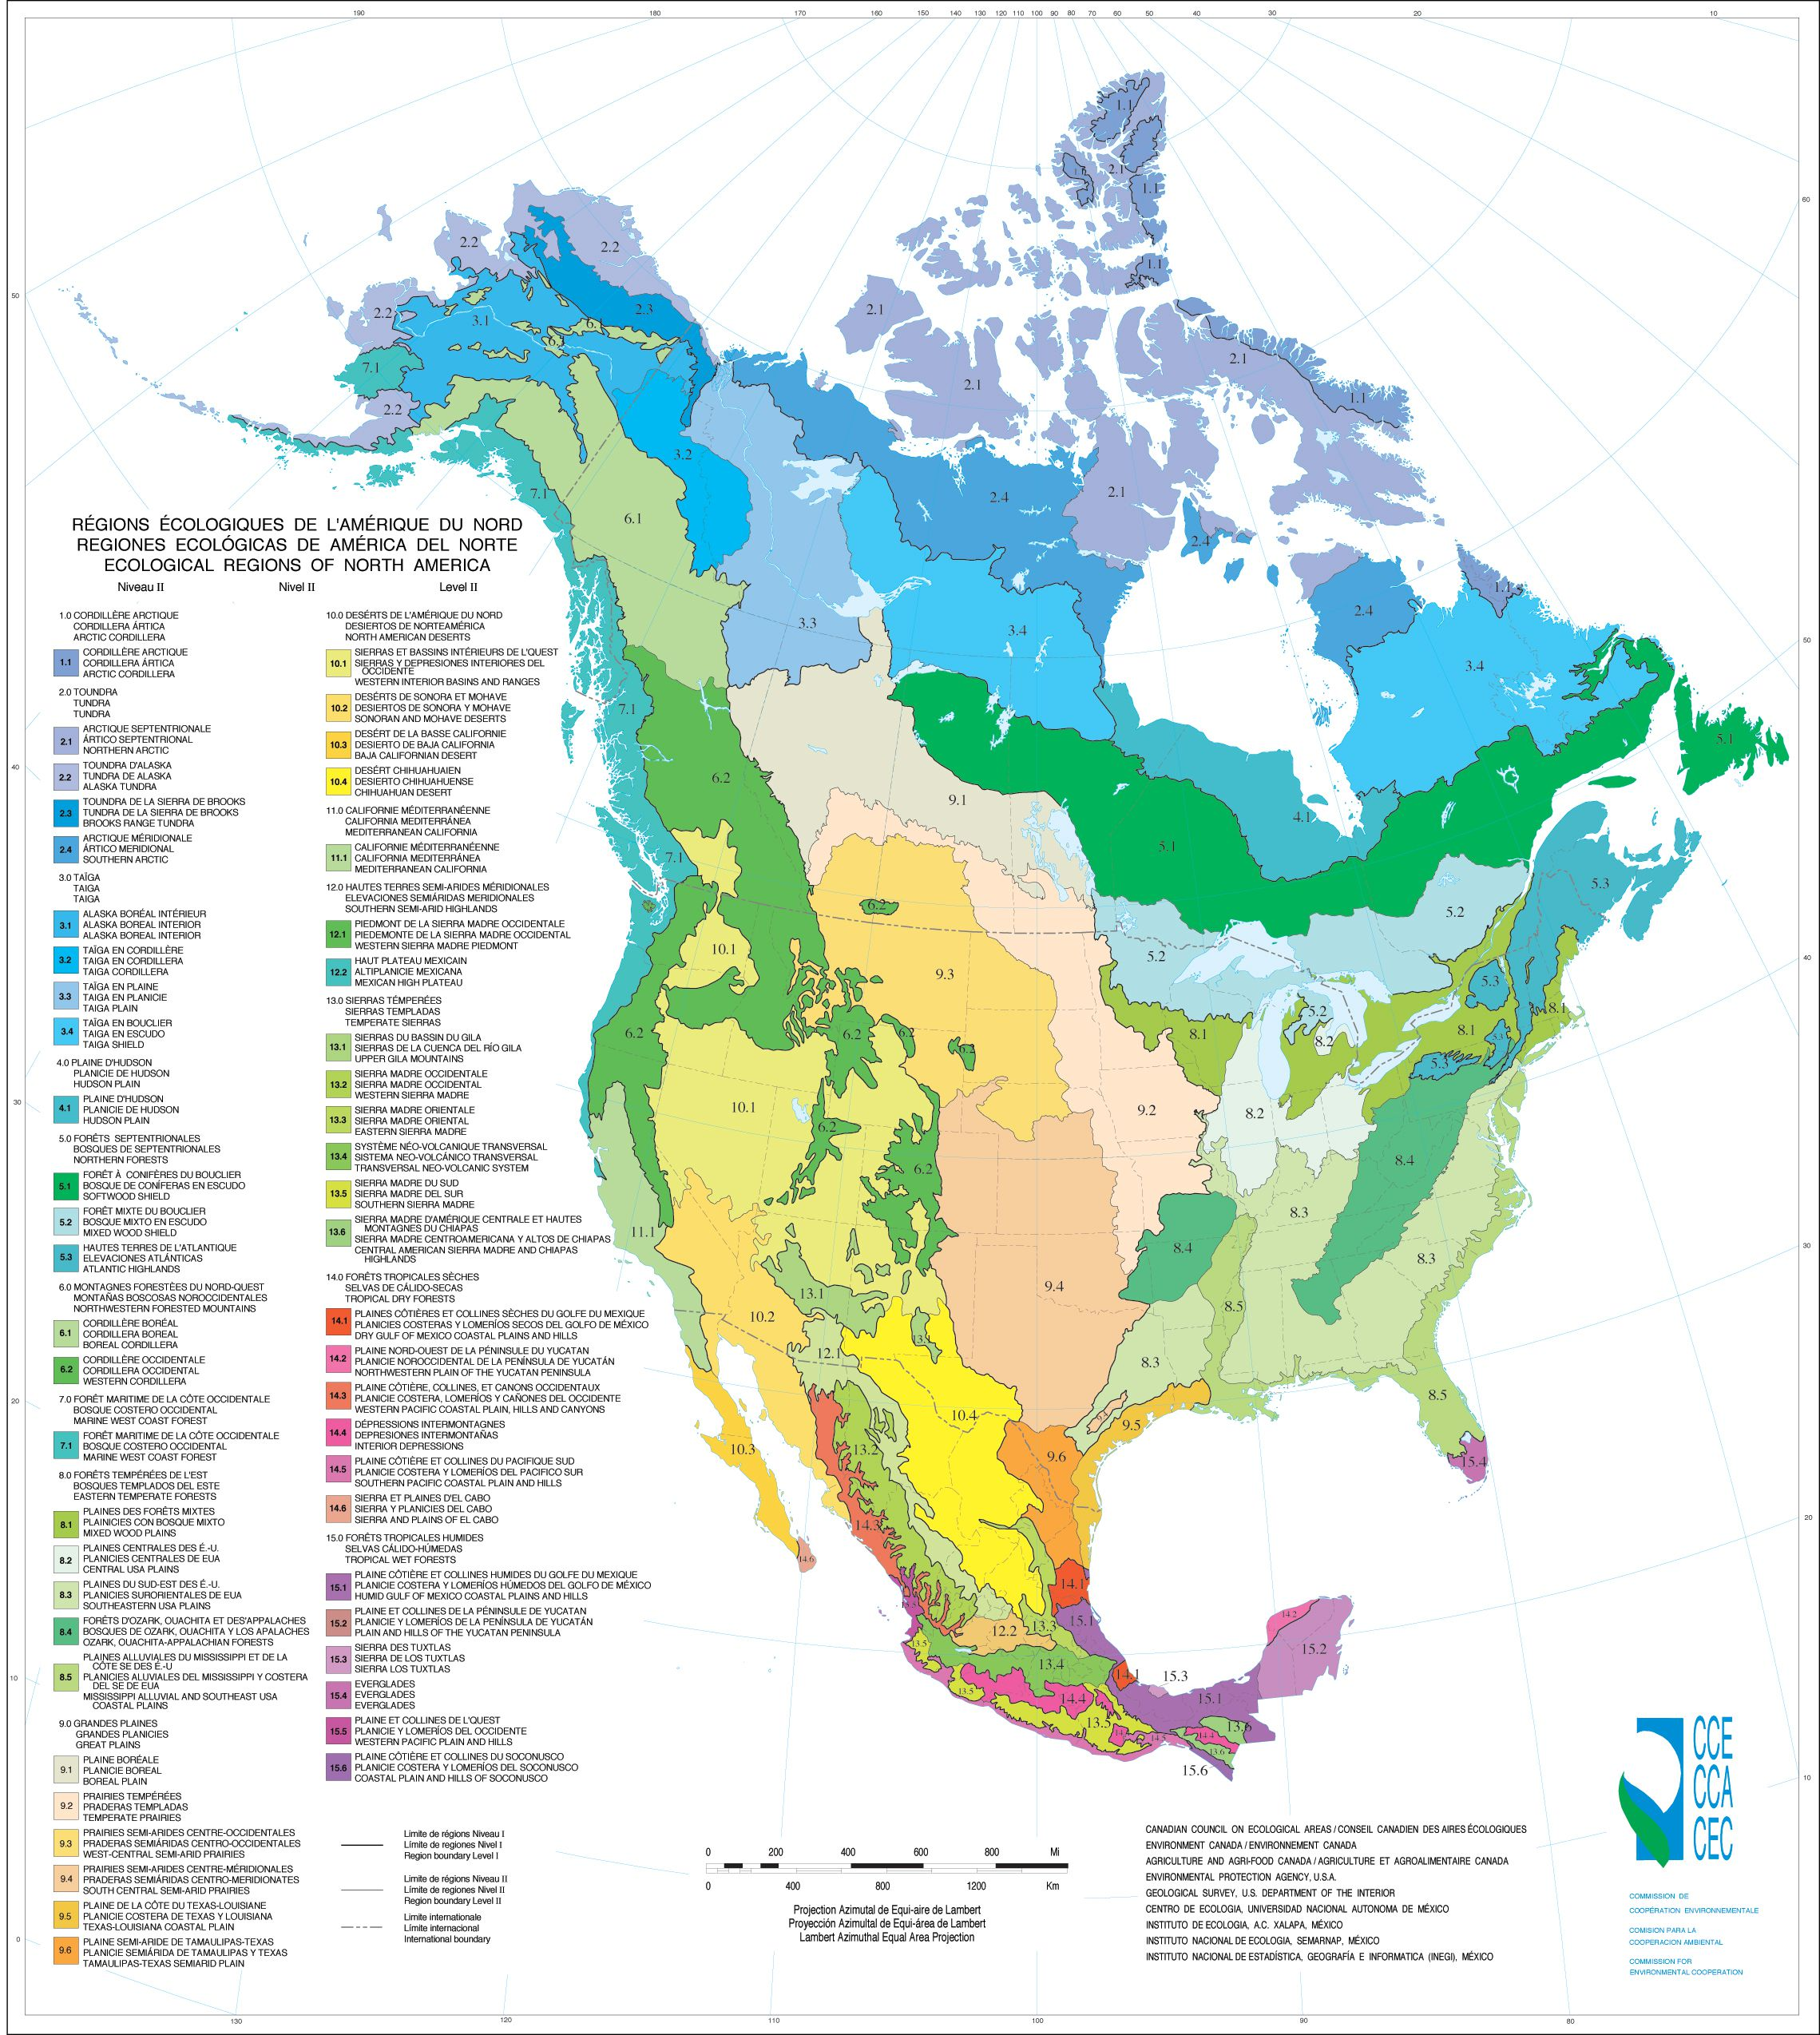 Us Epa Region Map Pictures To Pin On Pinterest  PinsDaddy